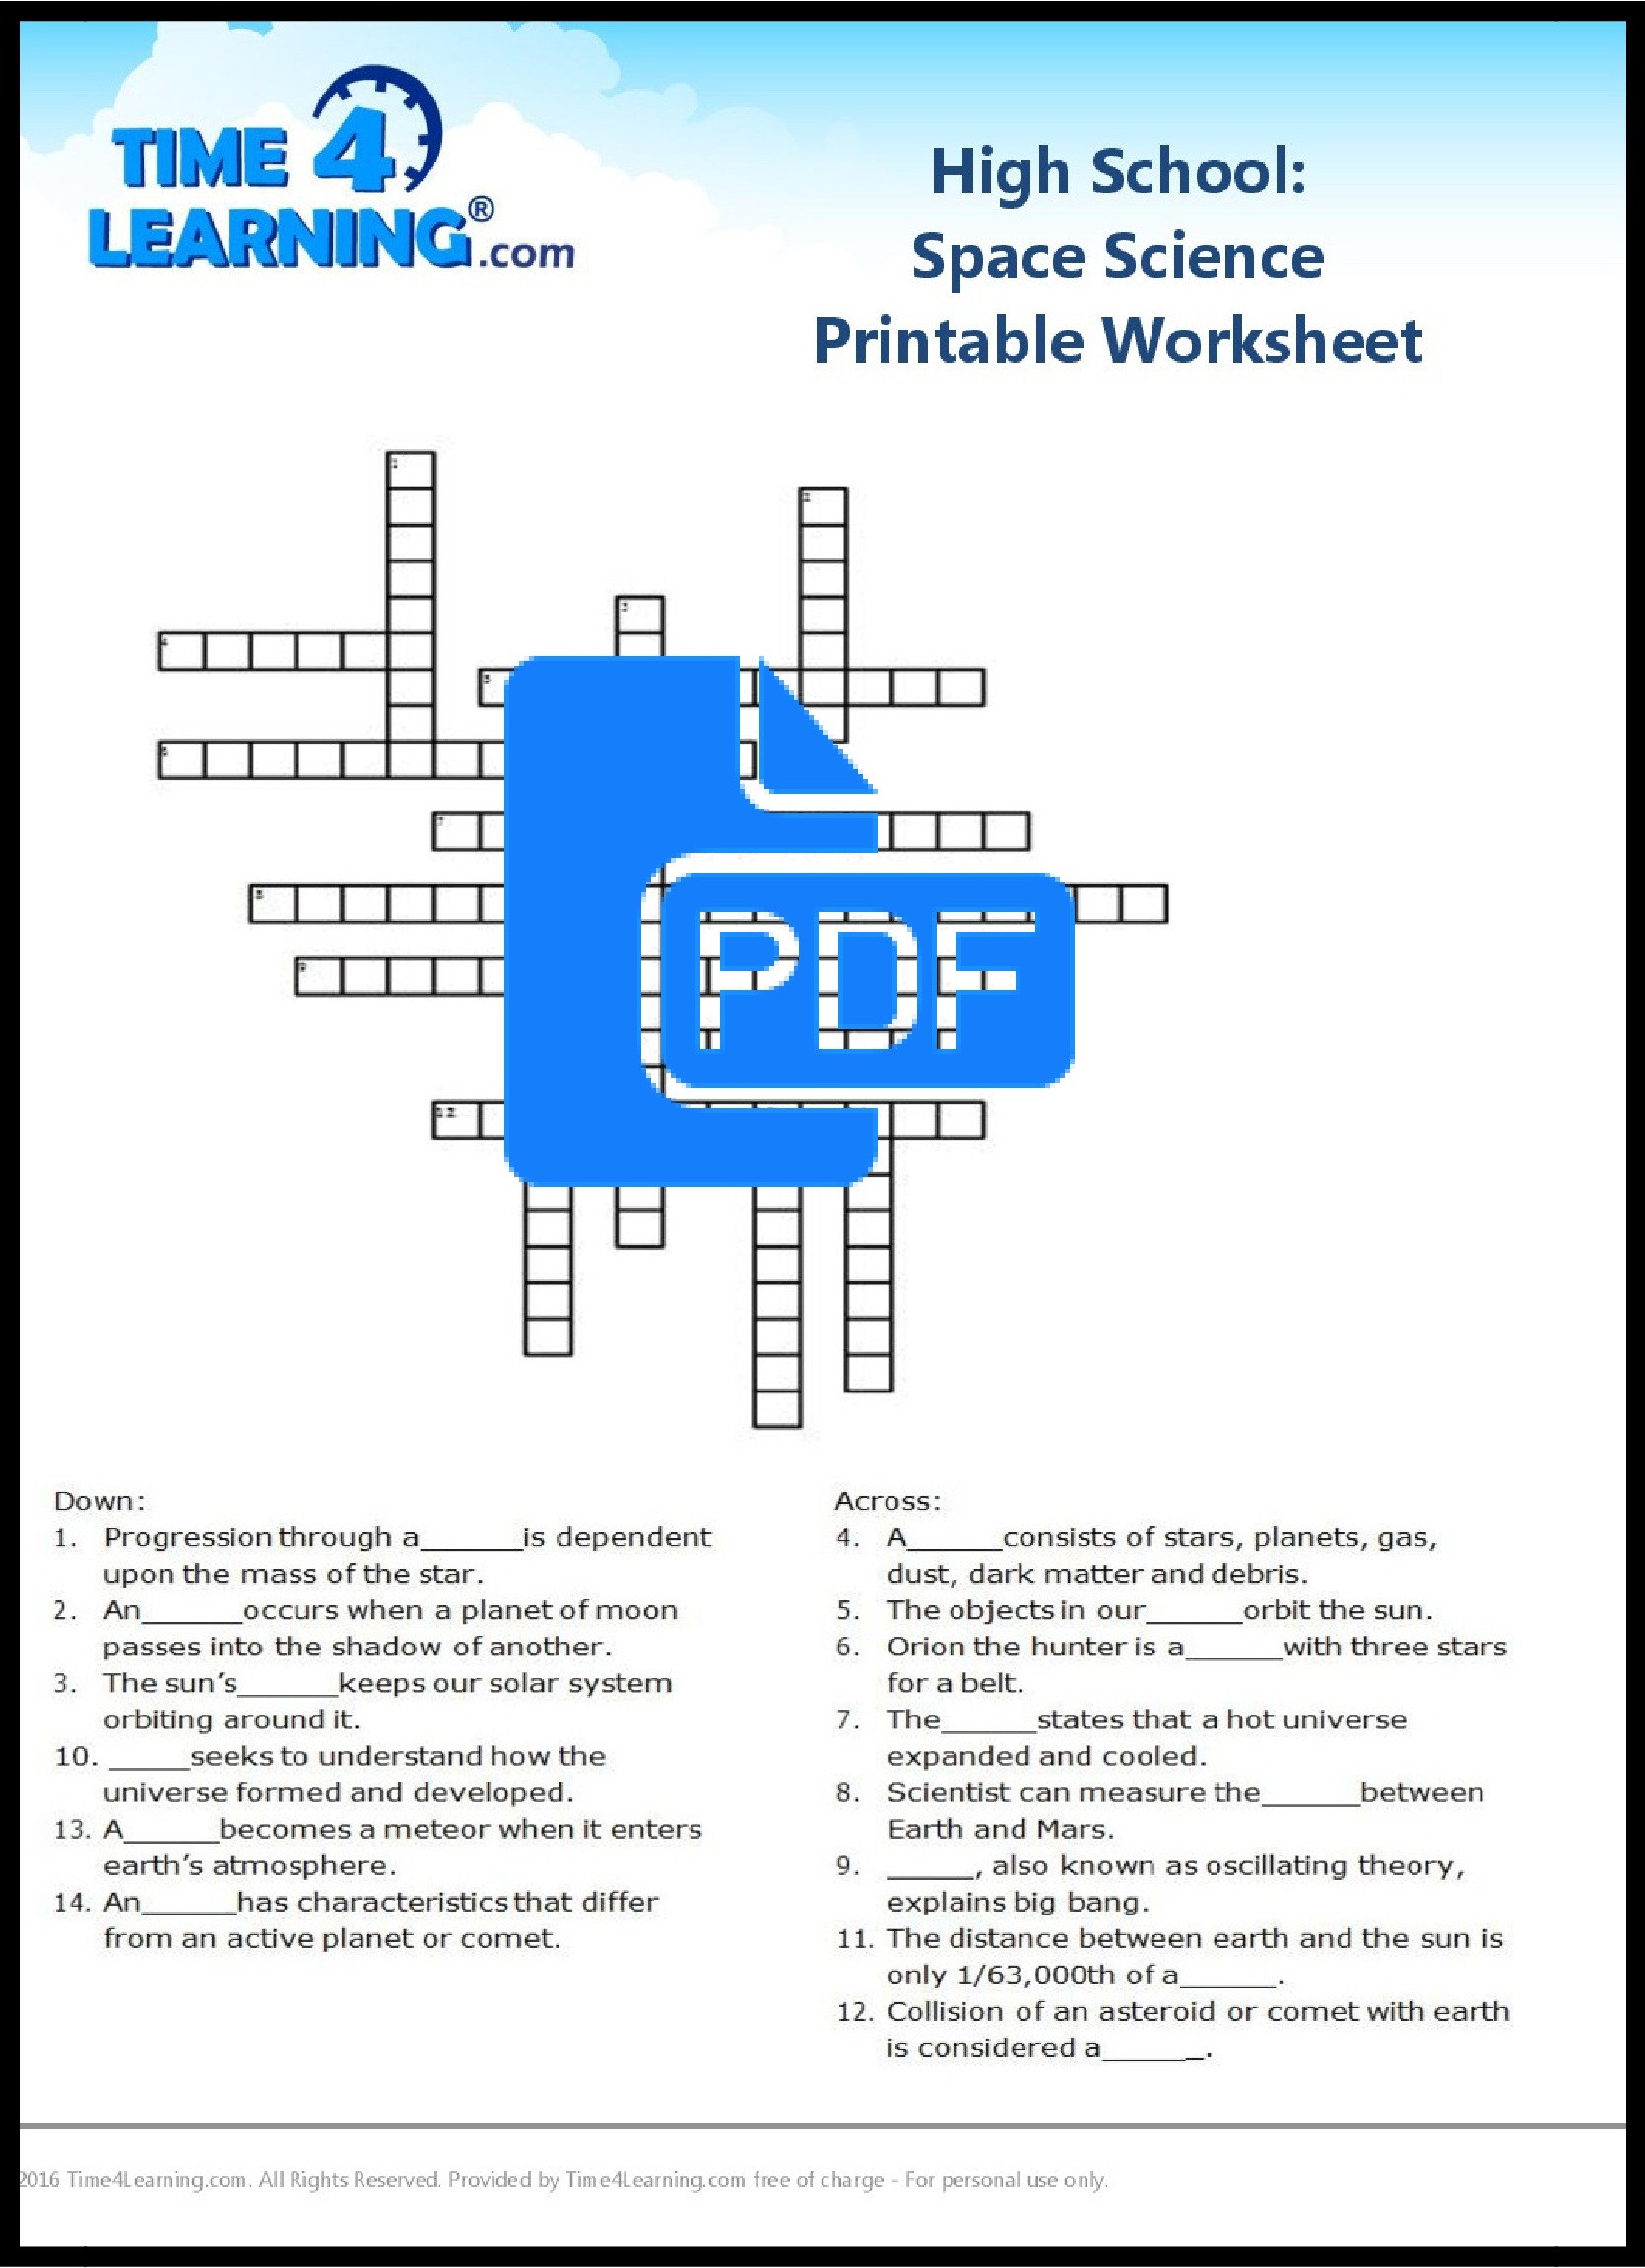 Middle School Science Worksheets Pdf Free Printable High School Space Science Worksheet